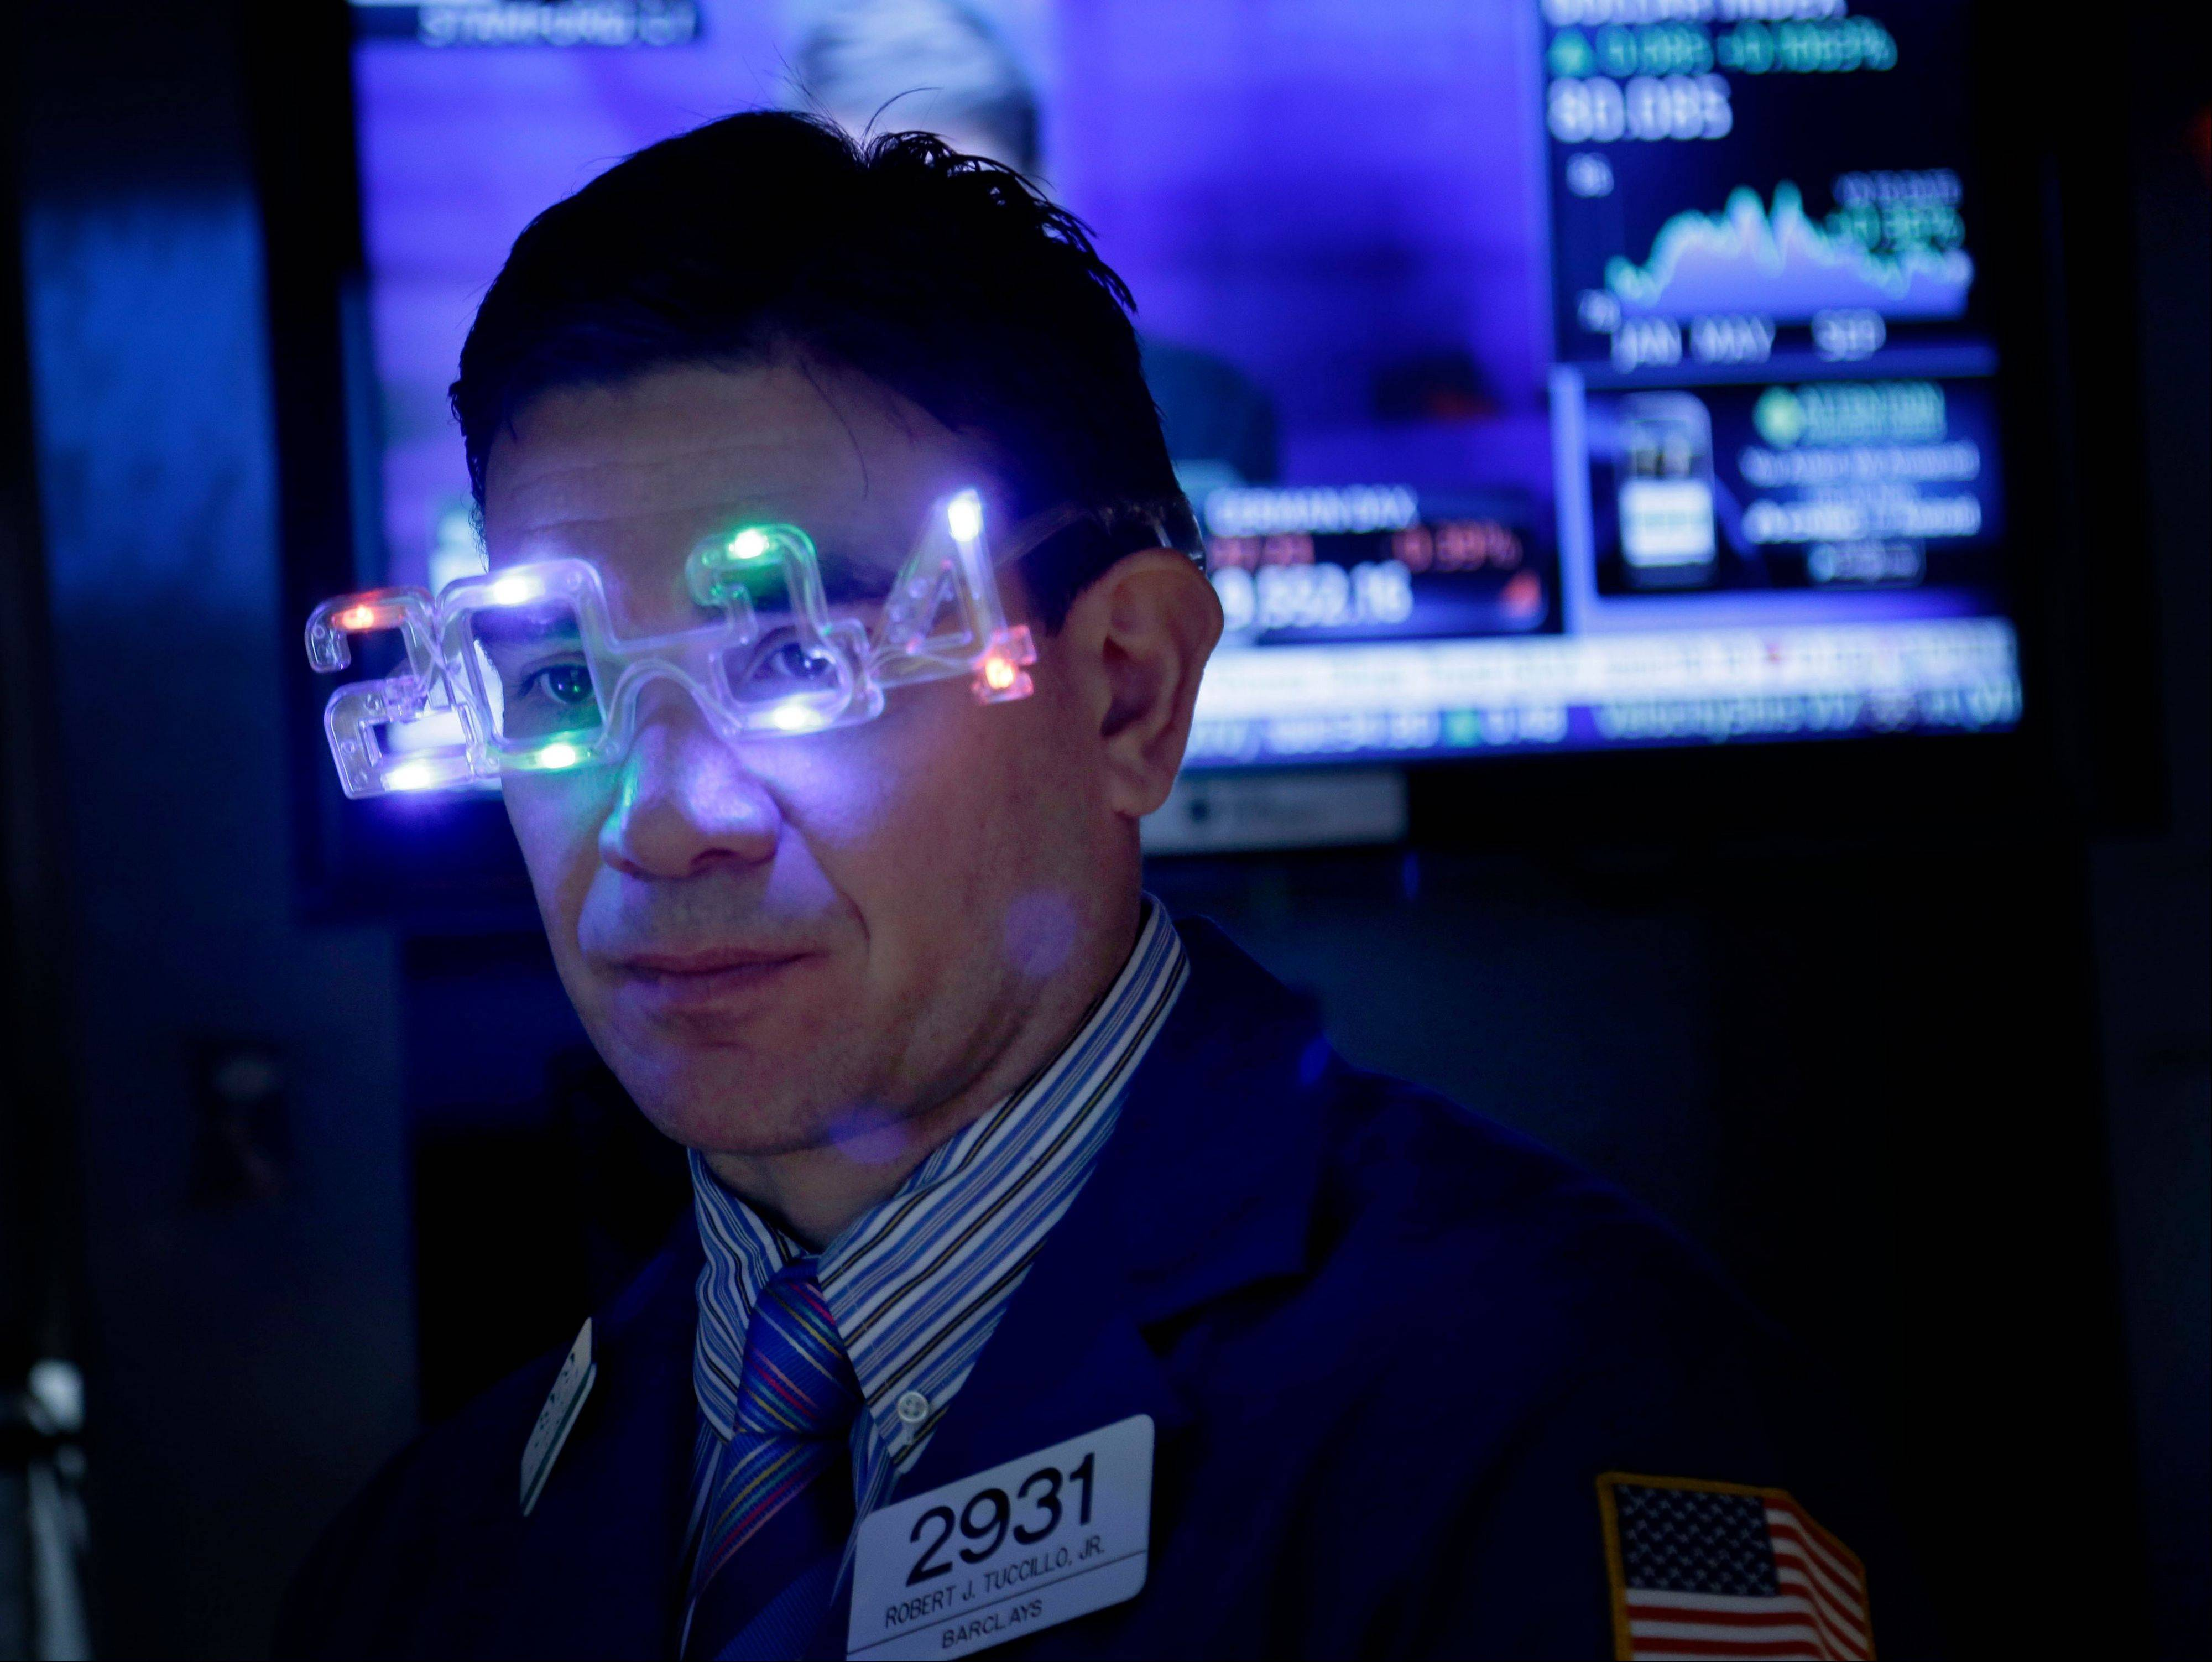 A trader wears glasses celebrating the new year while working on the floor at the New York Stock Exchange Tuesday. The Standard & Poor�s 500 Index posted its biggest annual advance since 1997, as gains in consumer confidence and housing prices bolstered confidence in the world�s largest economy.